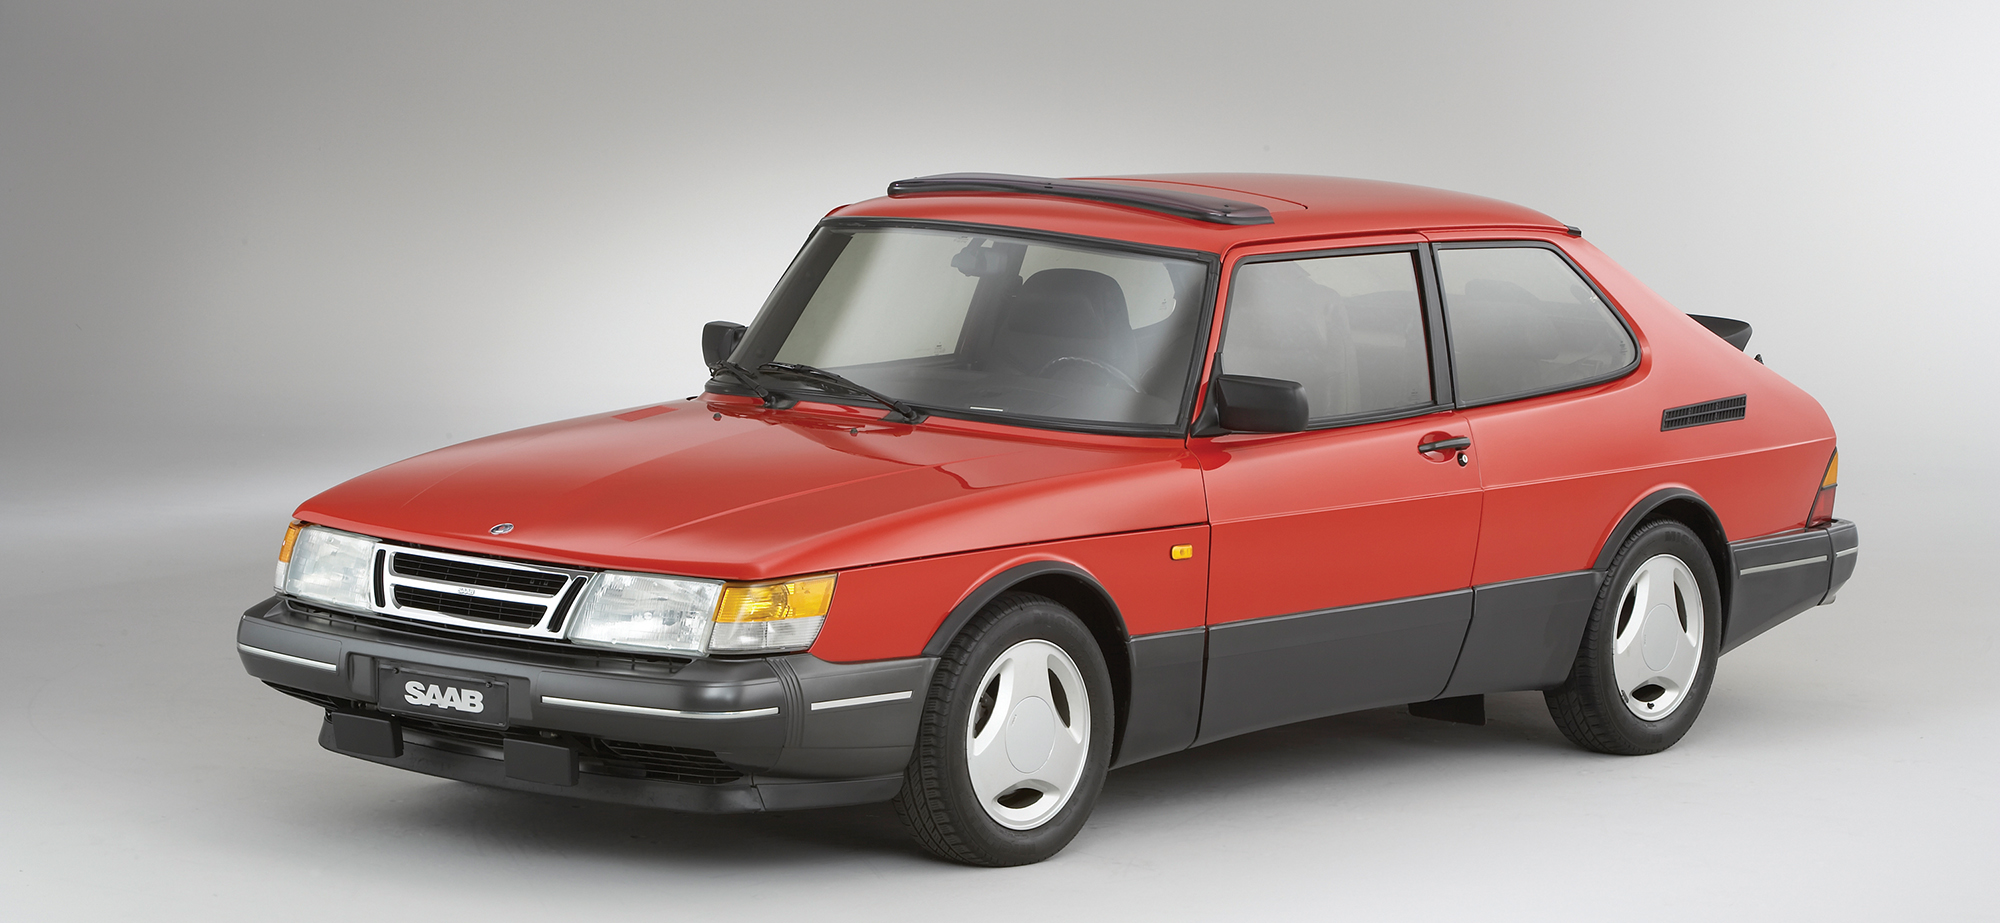 hight resolution of vintage views saab 900 spg